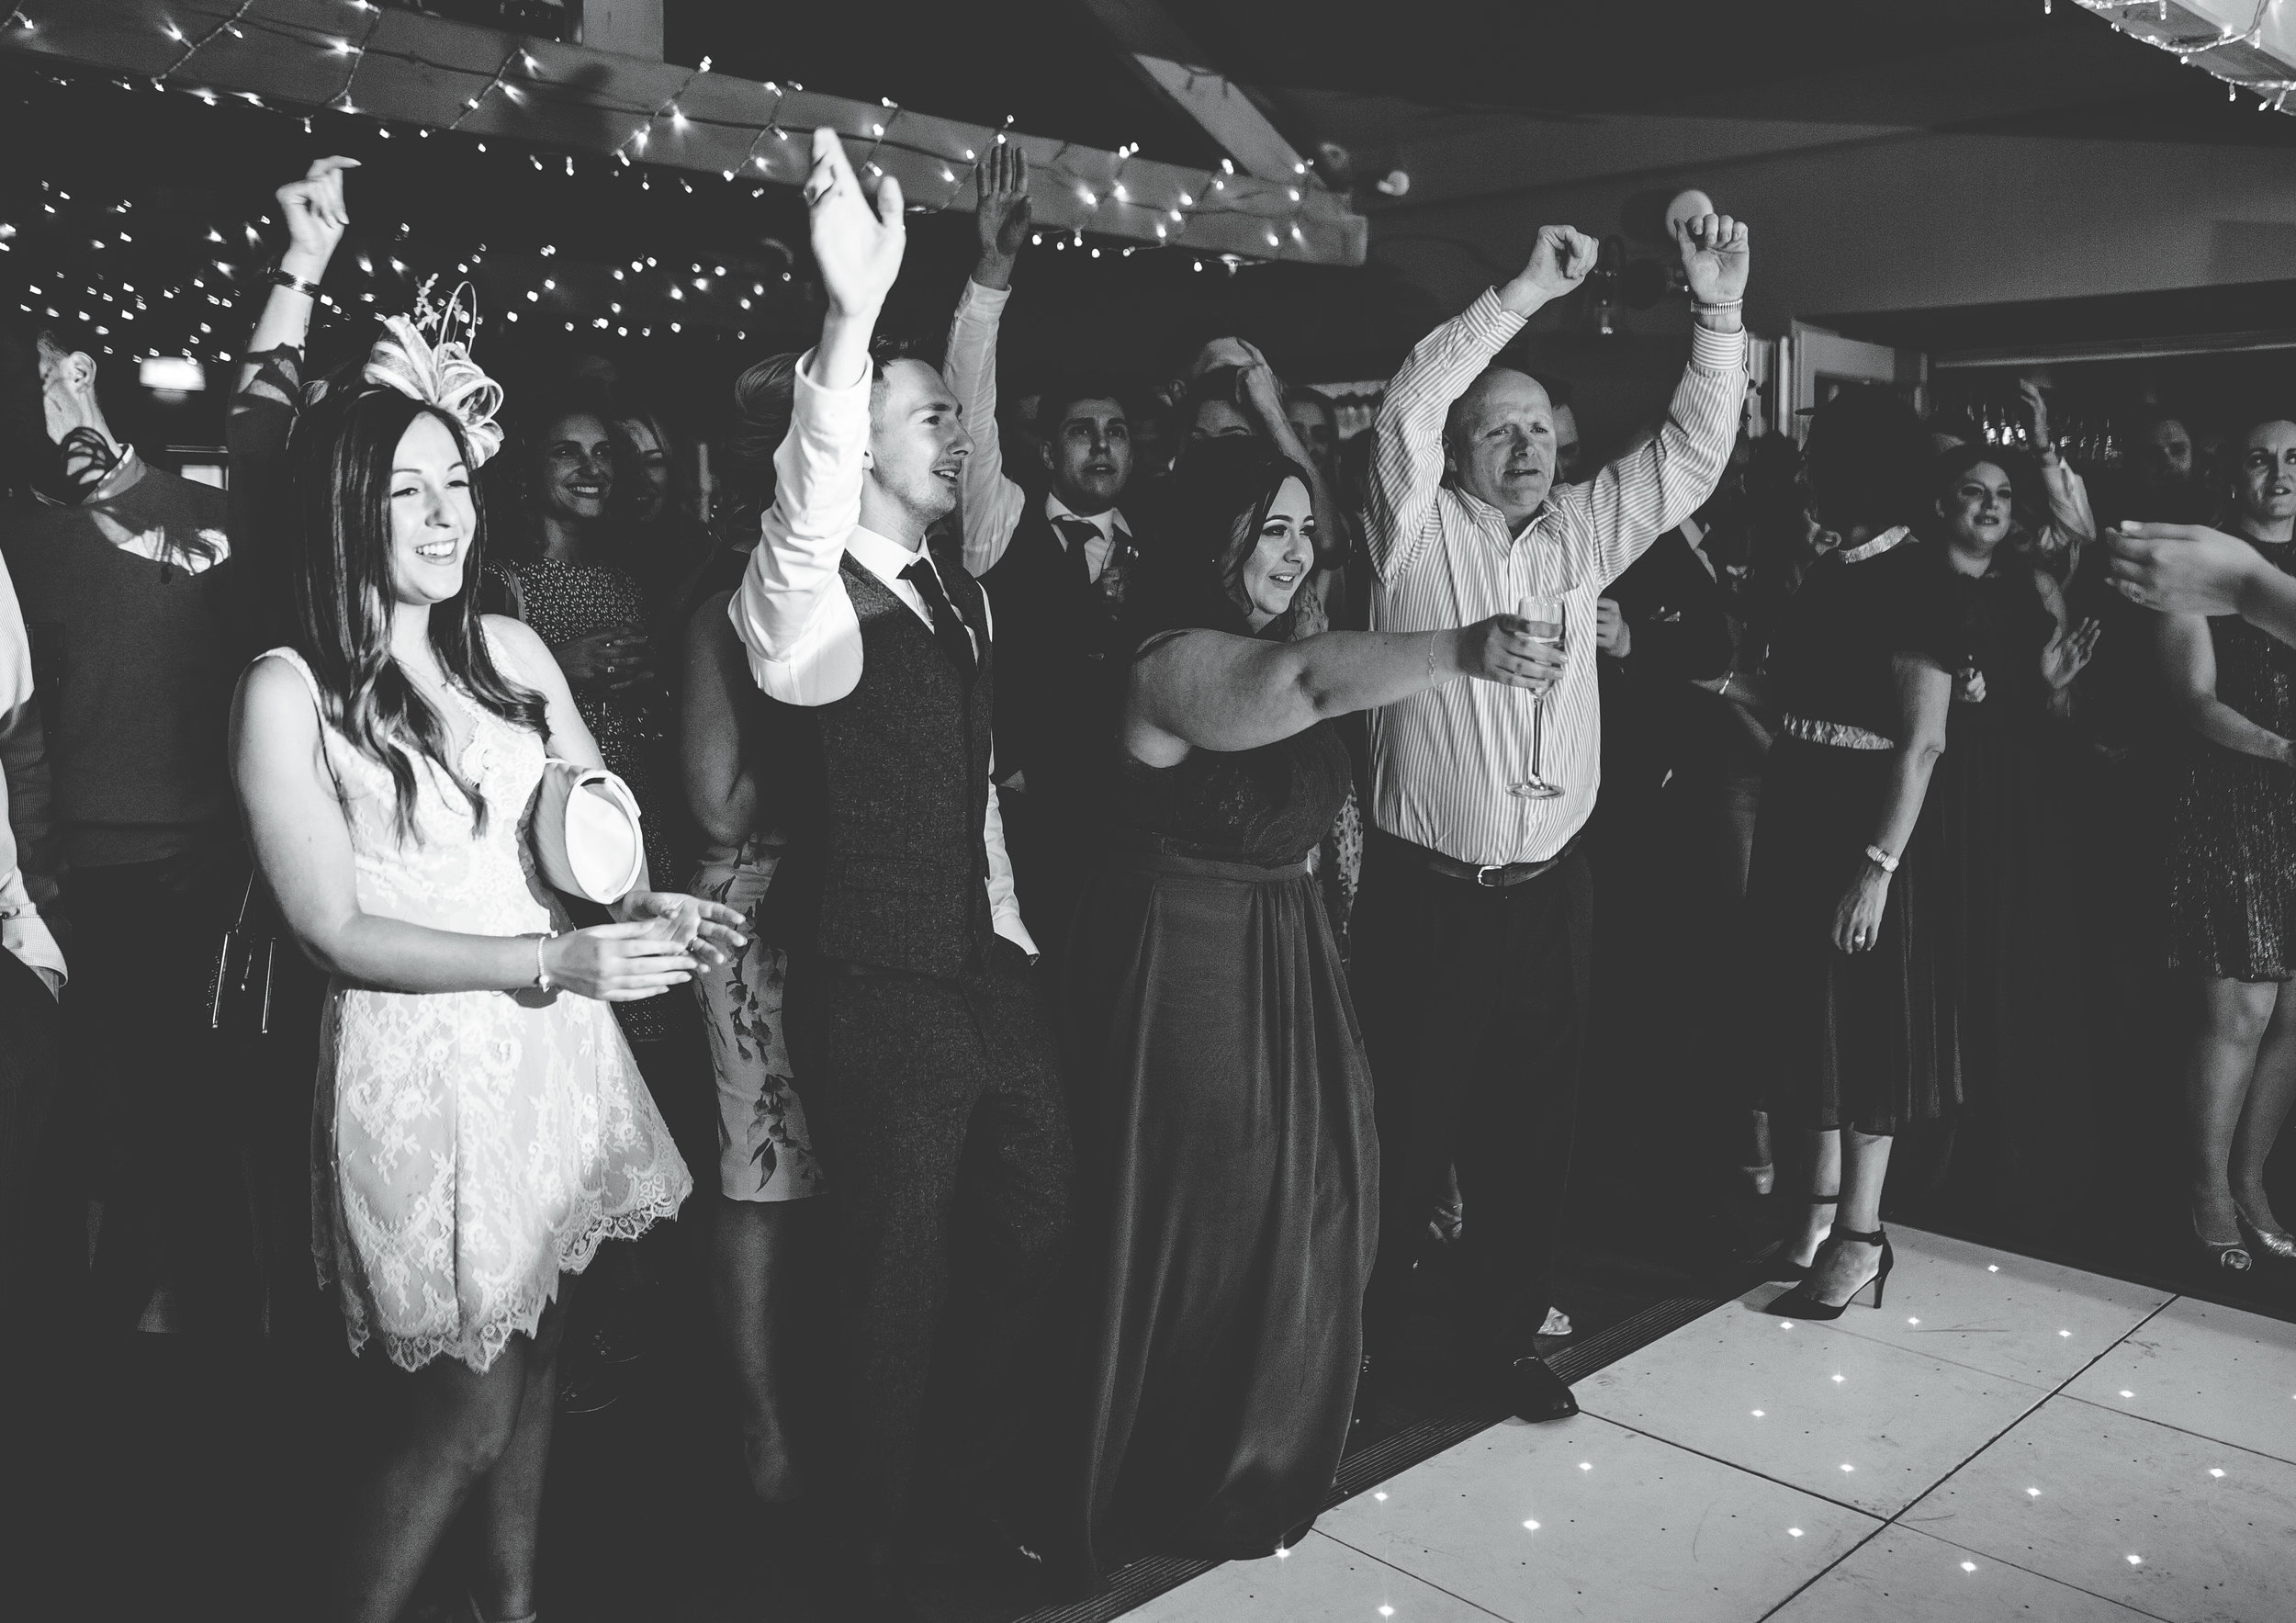 guests get excited on the dance floor